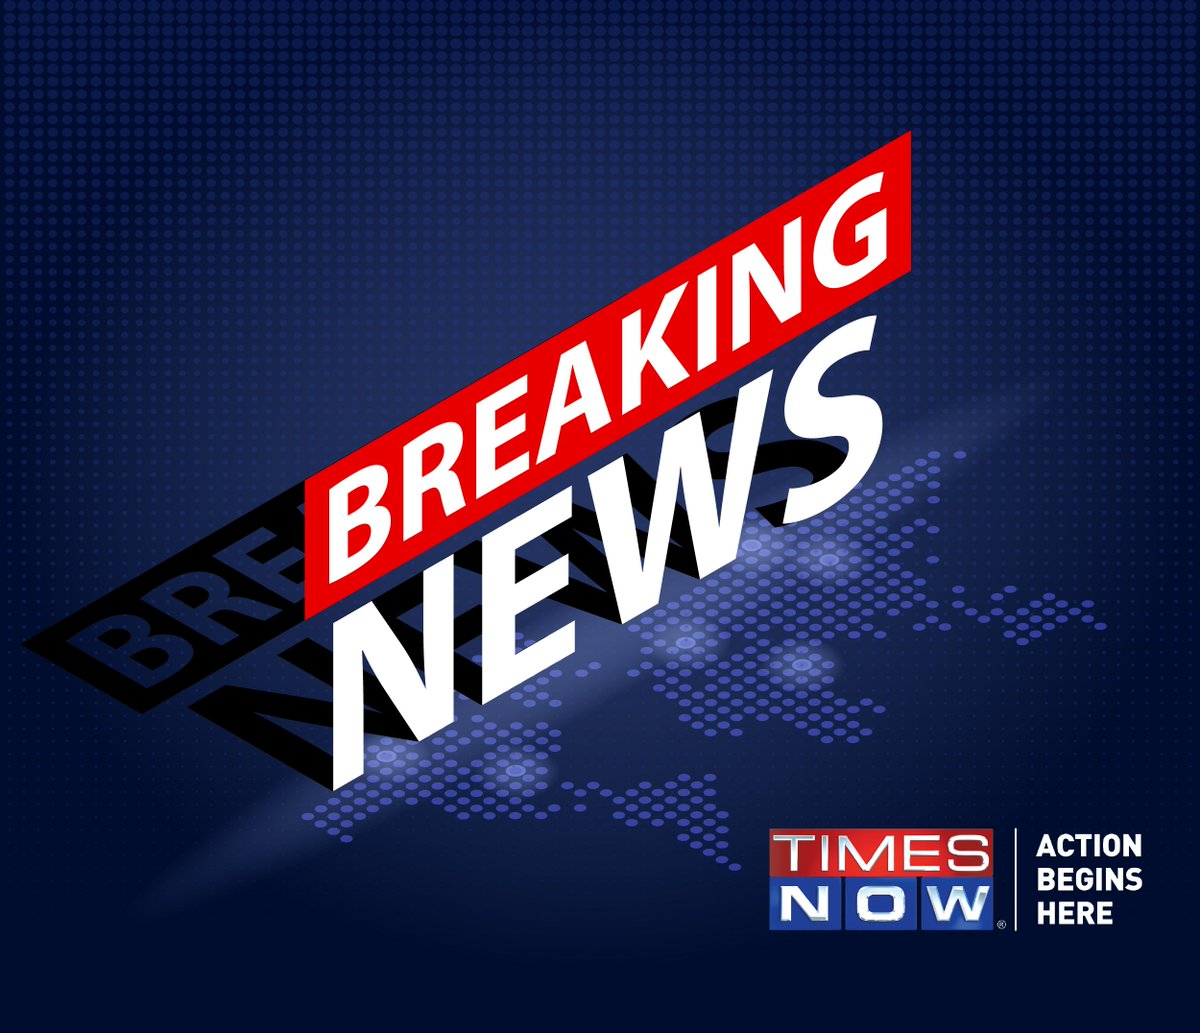 #BREAKING Massive twist in impeachment plot, Manmohan Singh refuses to sign impeachment motion, Congress plays down embarrassment, Cong: We didn't involve him, he is an ex PM #CJIUnderSeige